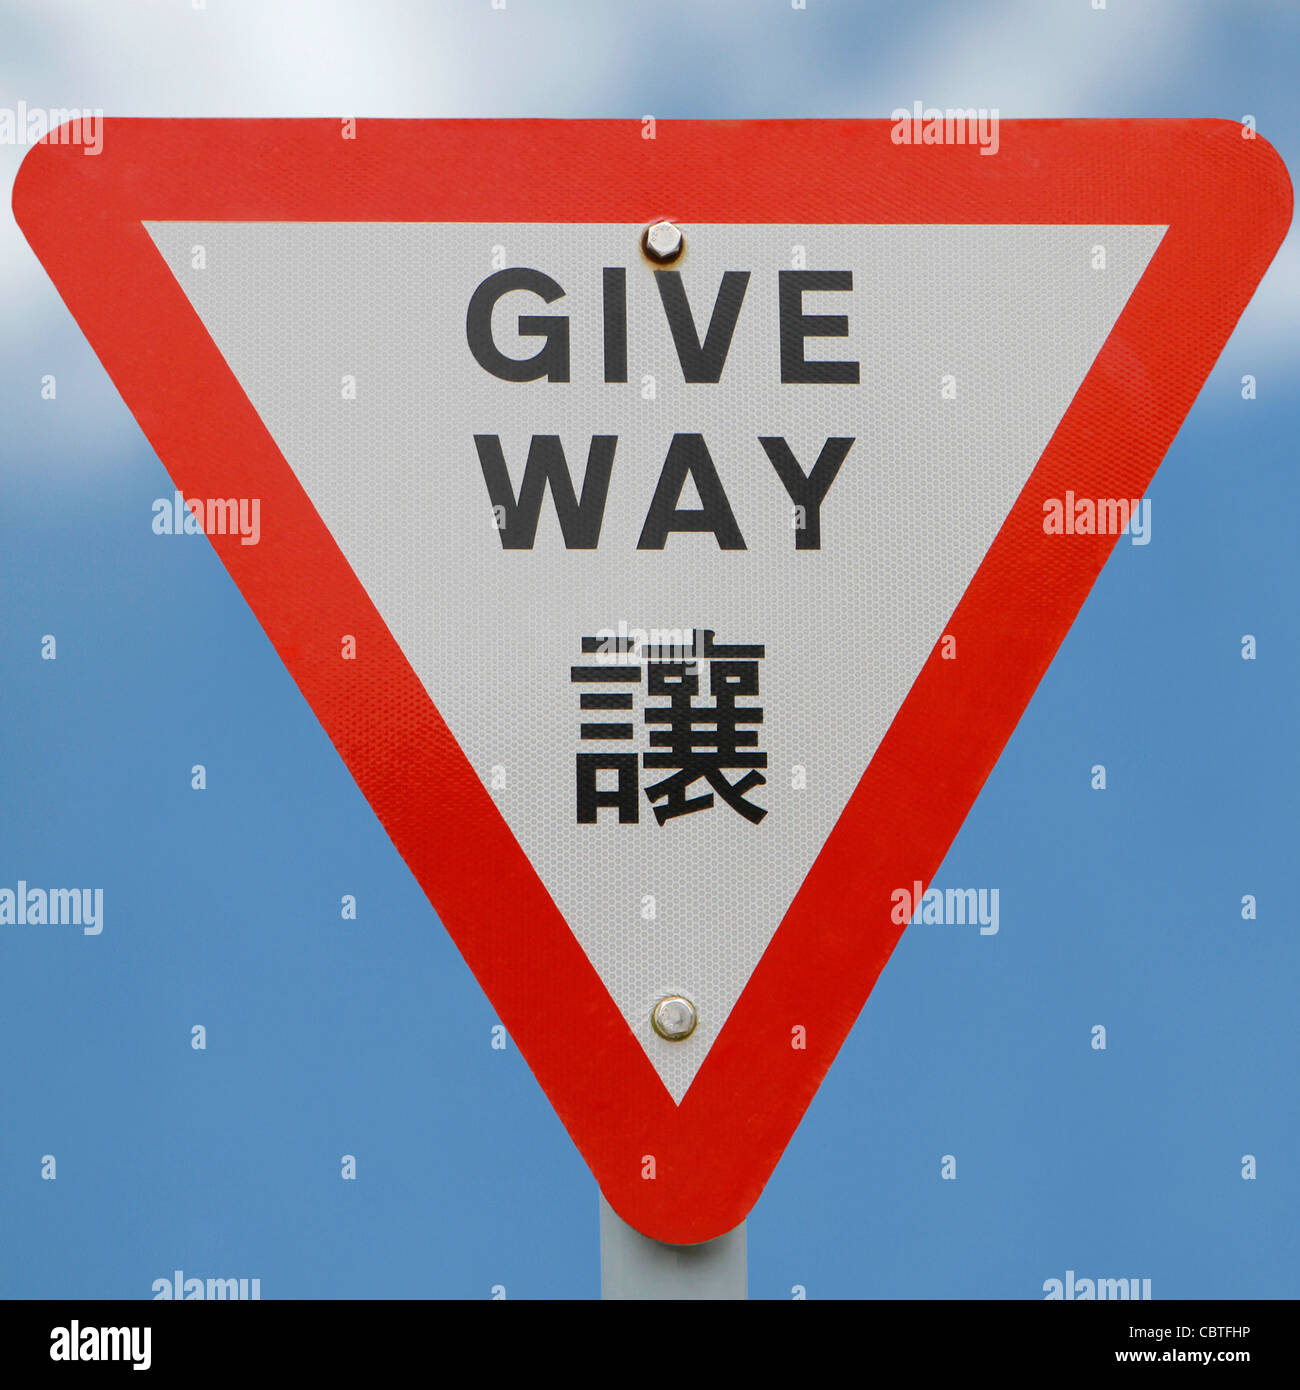 'Give Way' or yield sign in English and Chinese - Stock Image